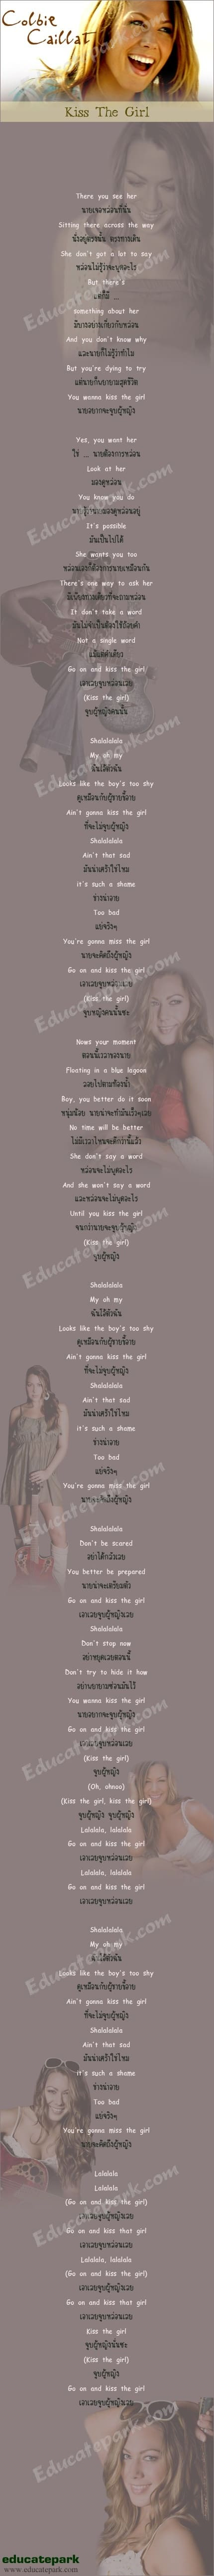 แปลเพลง Kiss The Girl - Colbie Caillat